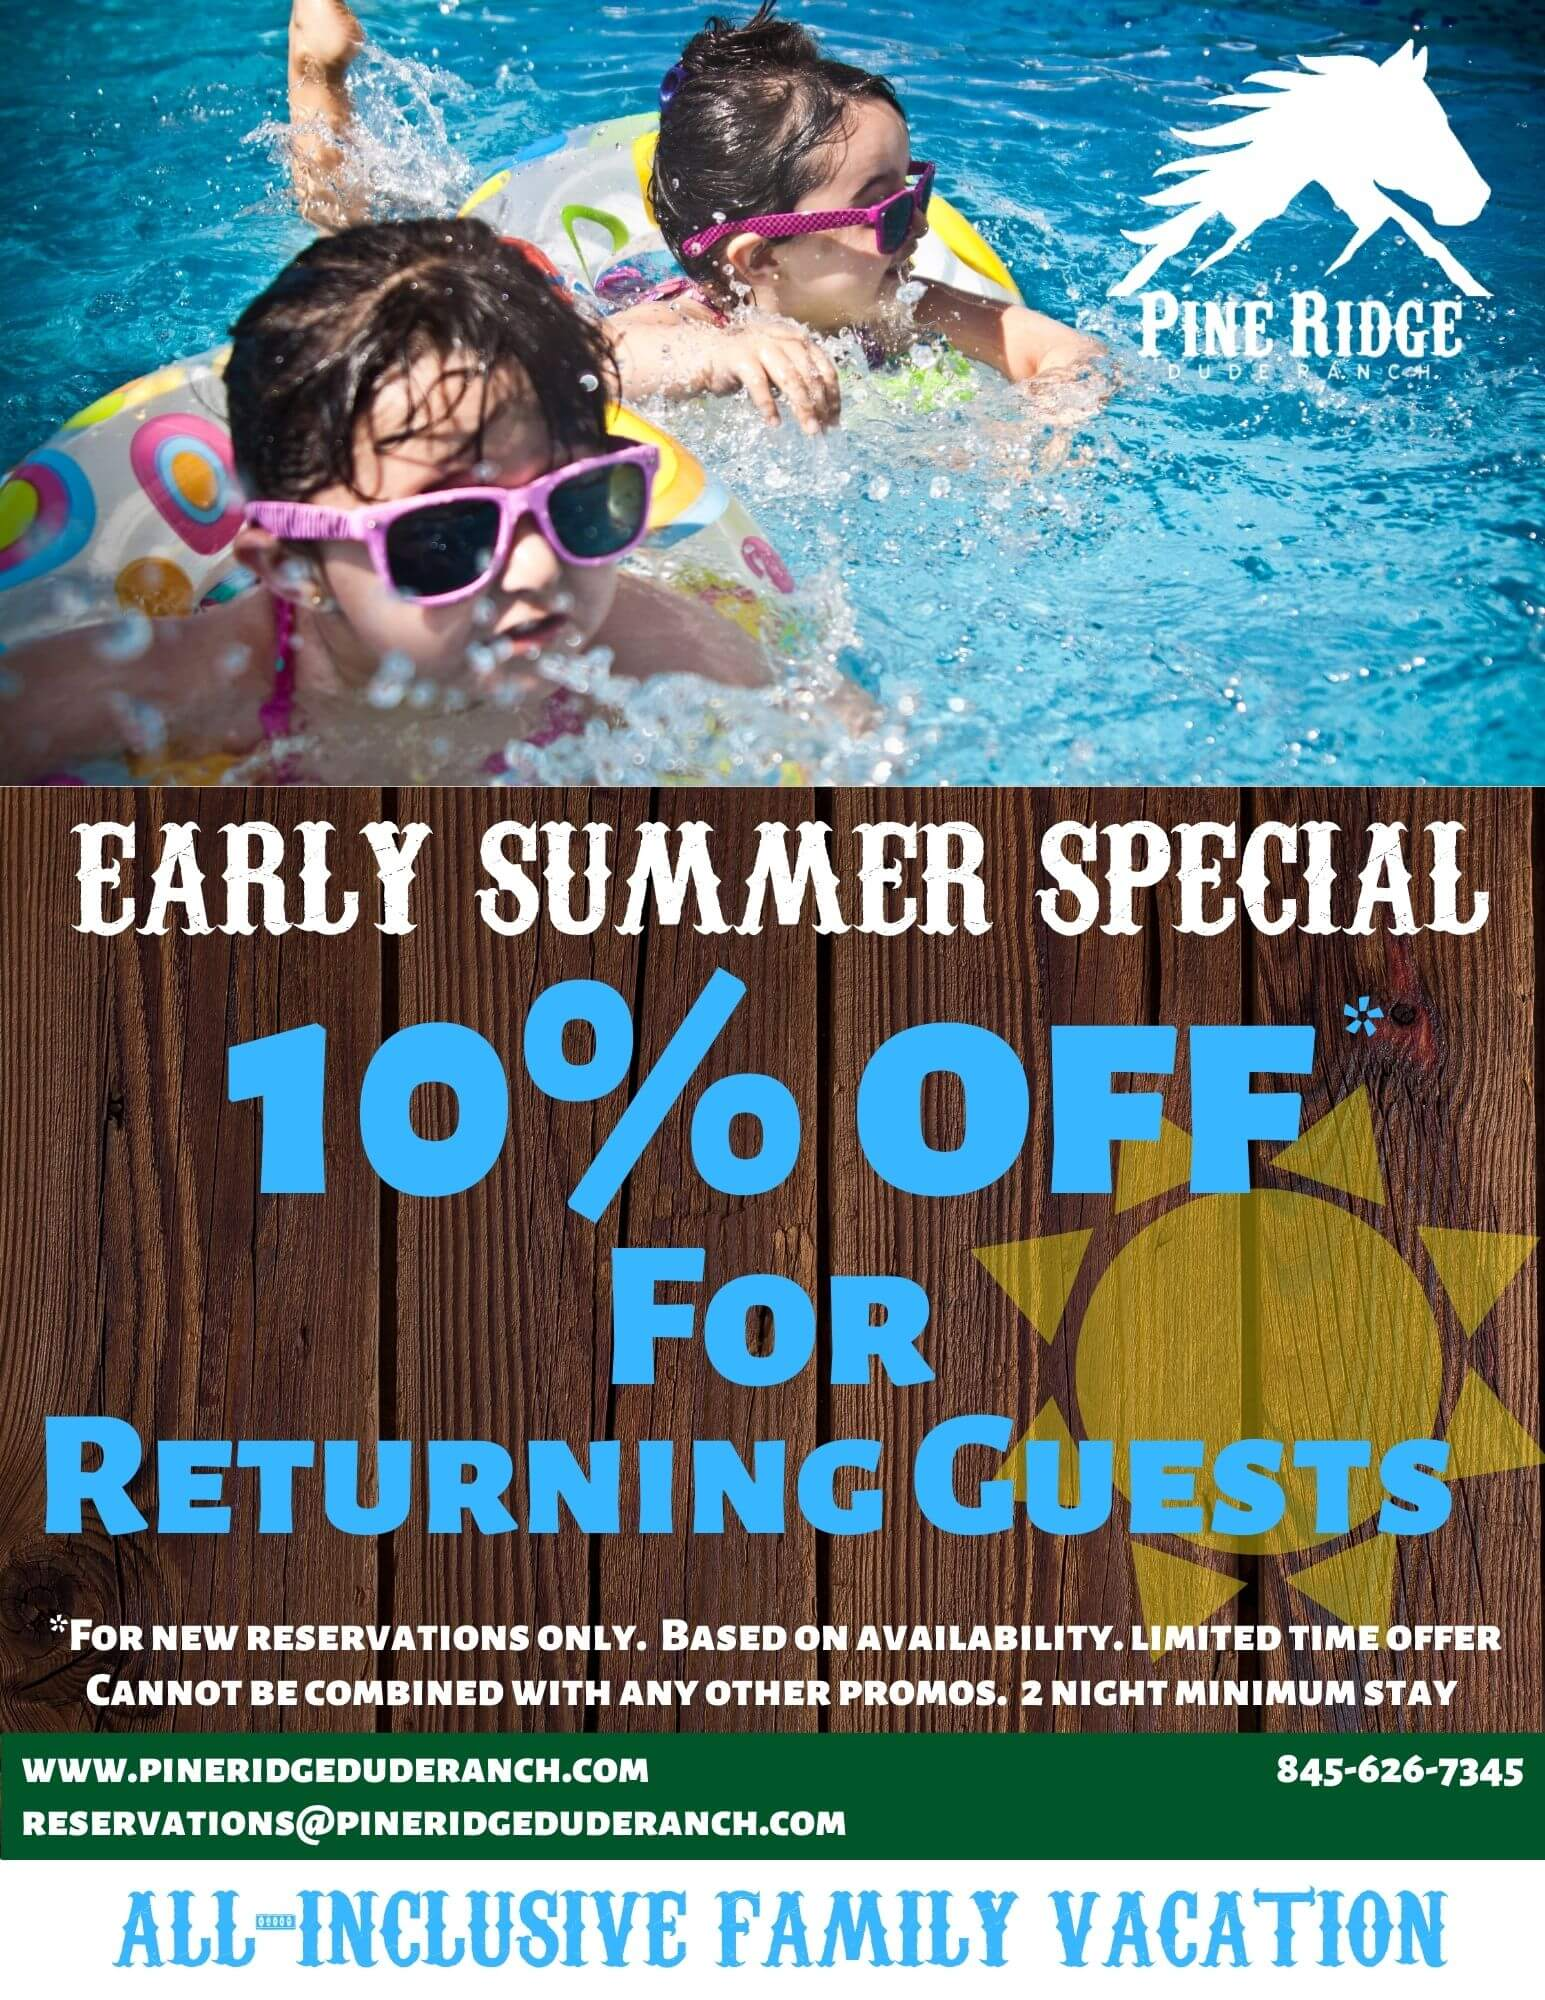 early summer special, 10%off for returning guests, two toddlers in pool on floaties with pink glasses